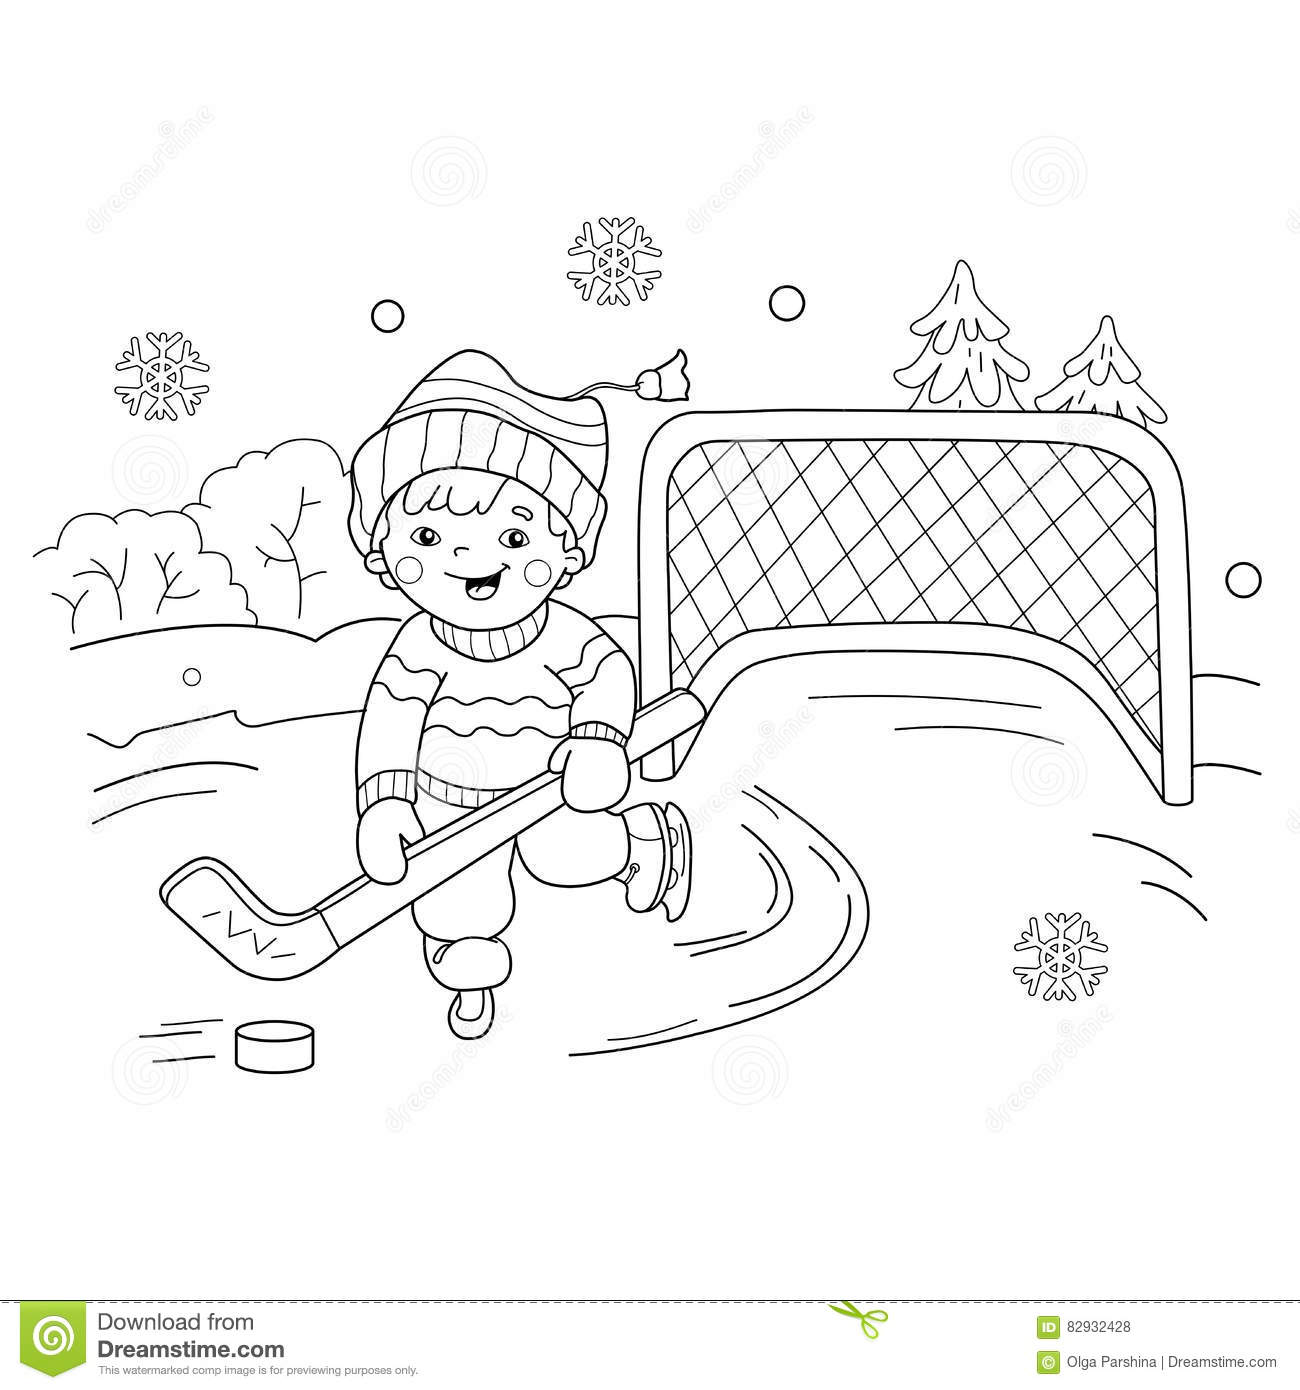 Coloring Page Outline Of Cartoon Boy Playing Hockey Stock